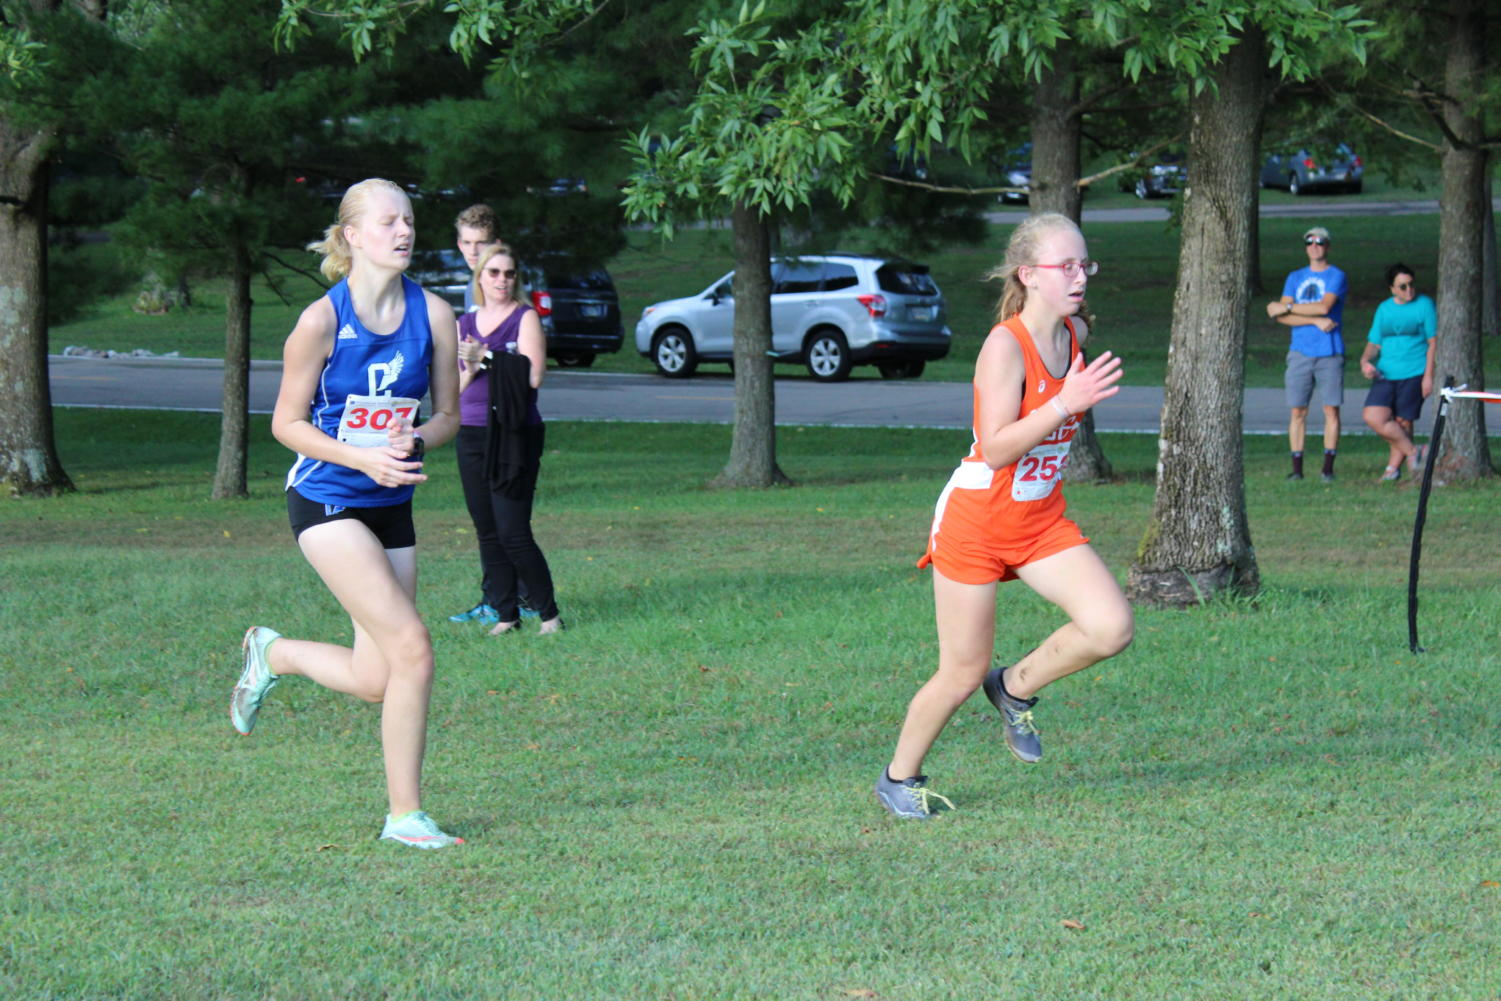 Freshman+Riley+Carothers+racing+a+runner+from+North.